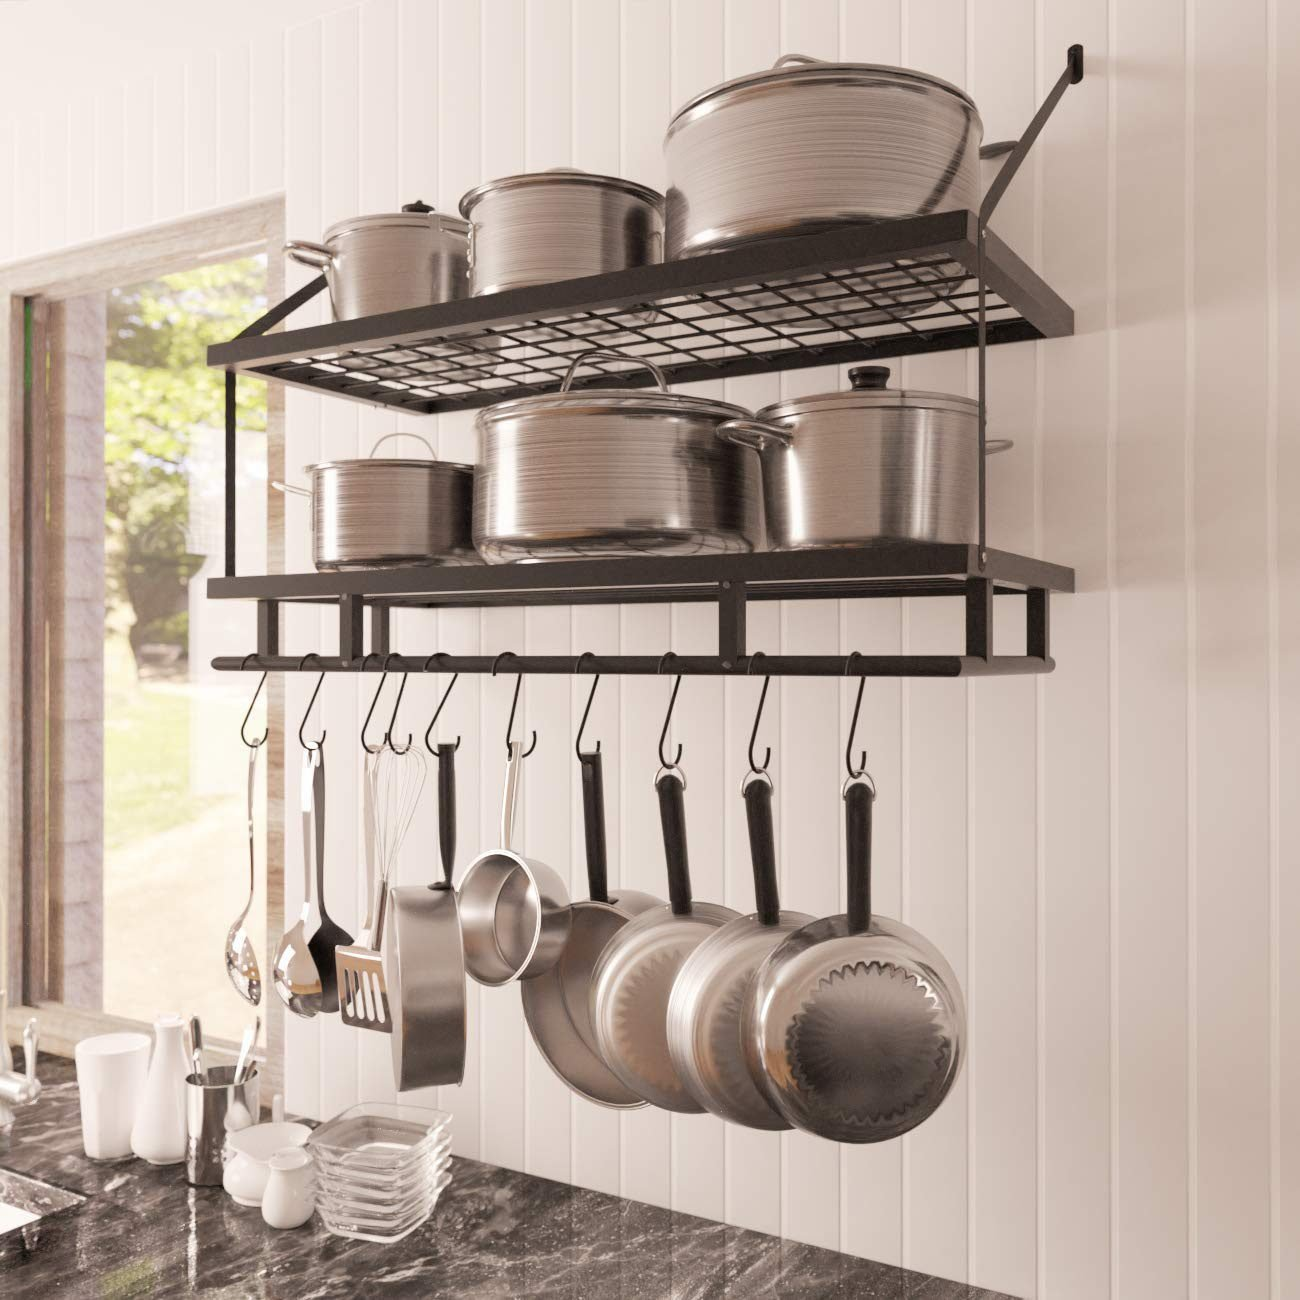 The Best Organizers For Your Pots And Pans I Taste Of Home